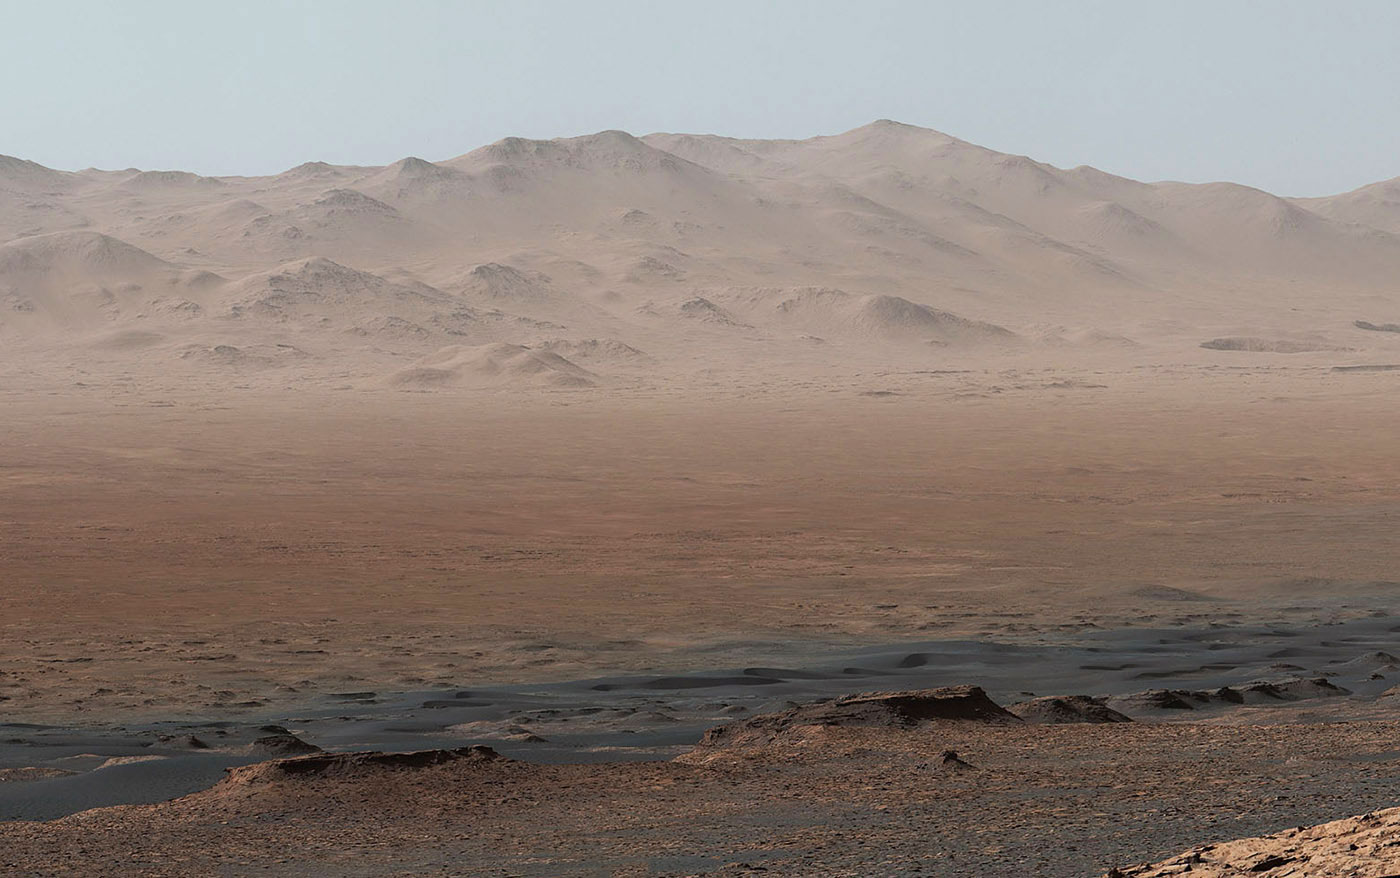 Curiosity's sweeping Mars panorama shows how far it's come